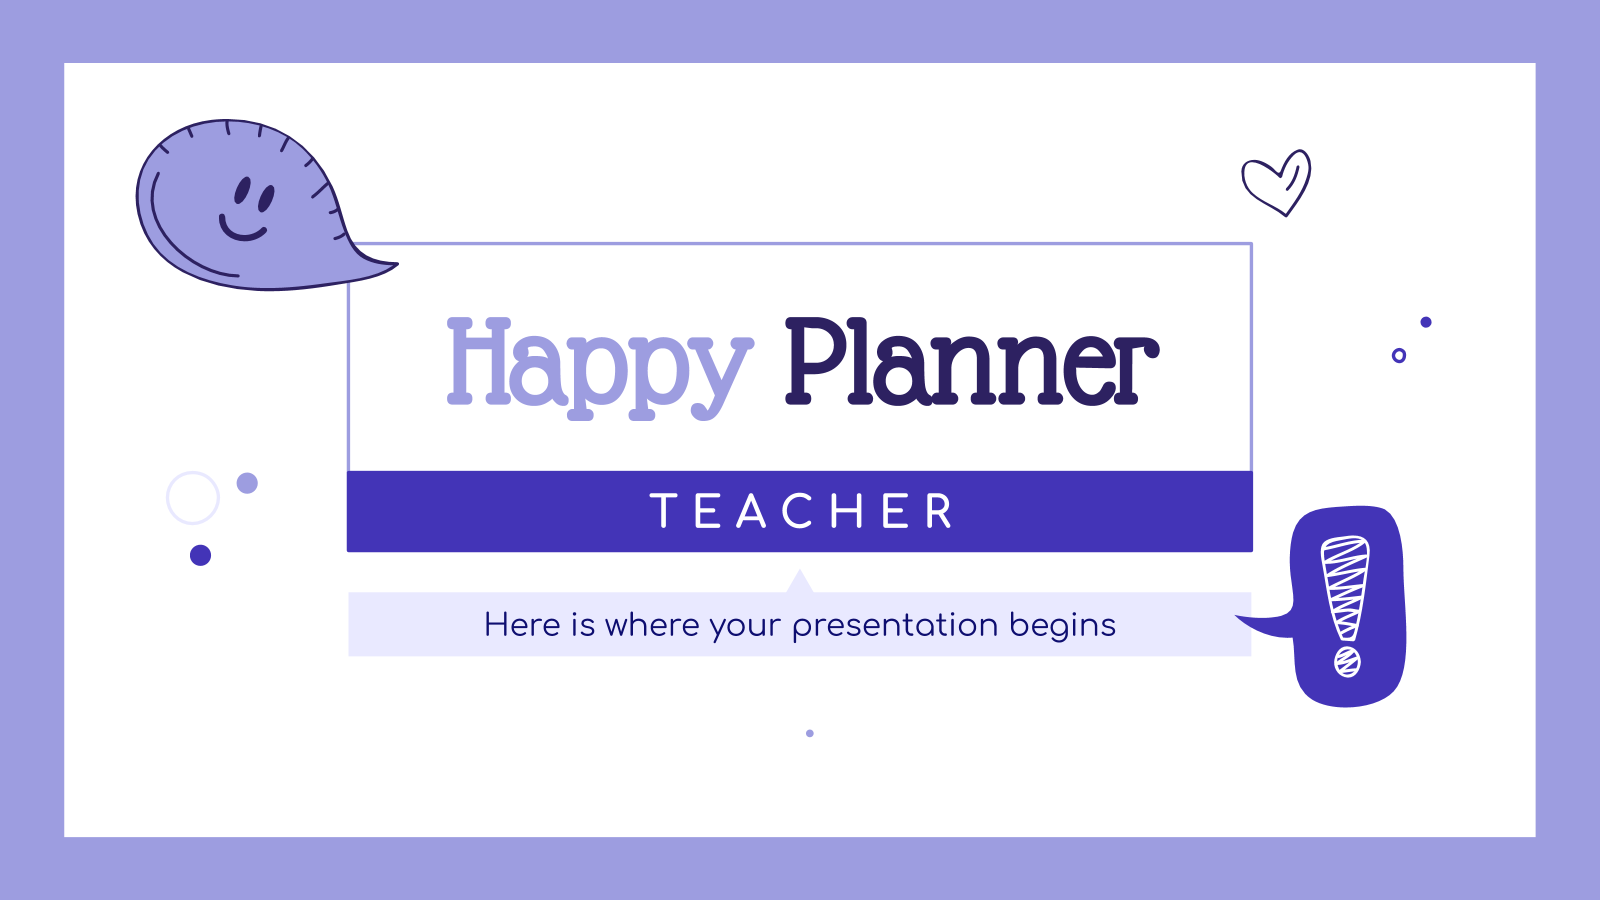 Happy planner teacher presentation template